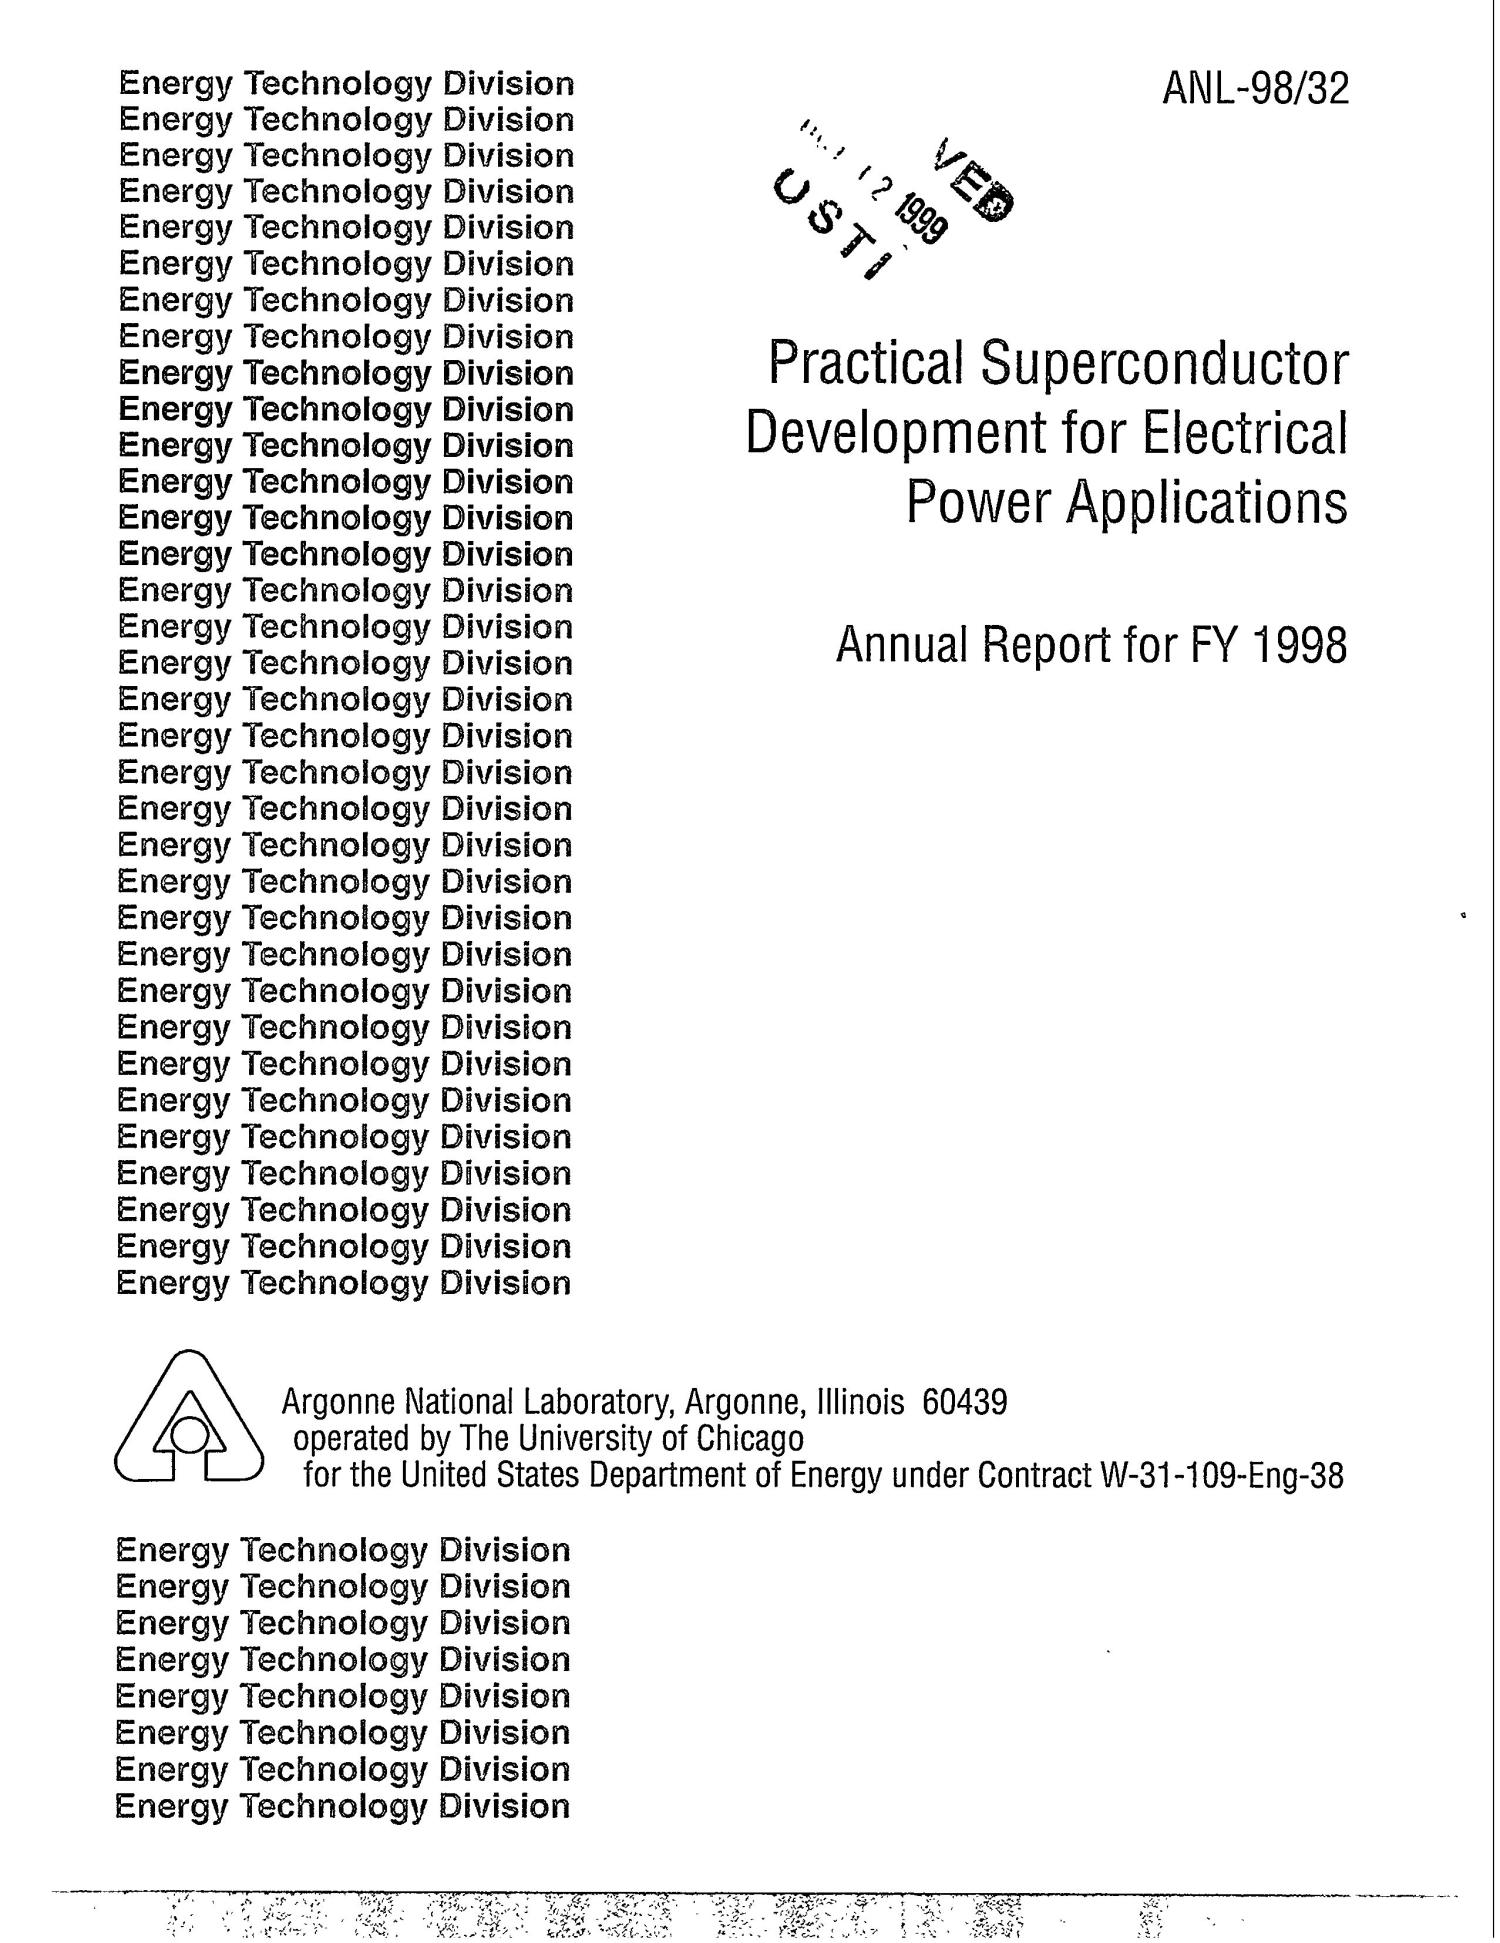 Practical superconductor development for electrical power applications annual report for FY 1998.                                                                                                      [Sequence #]: 1 of 26